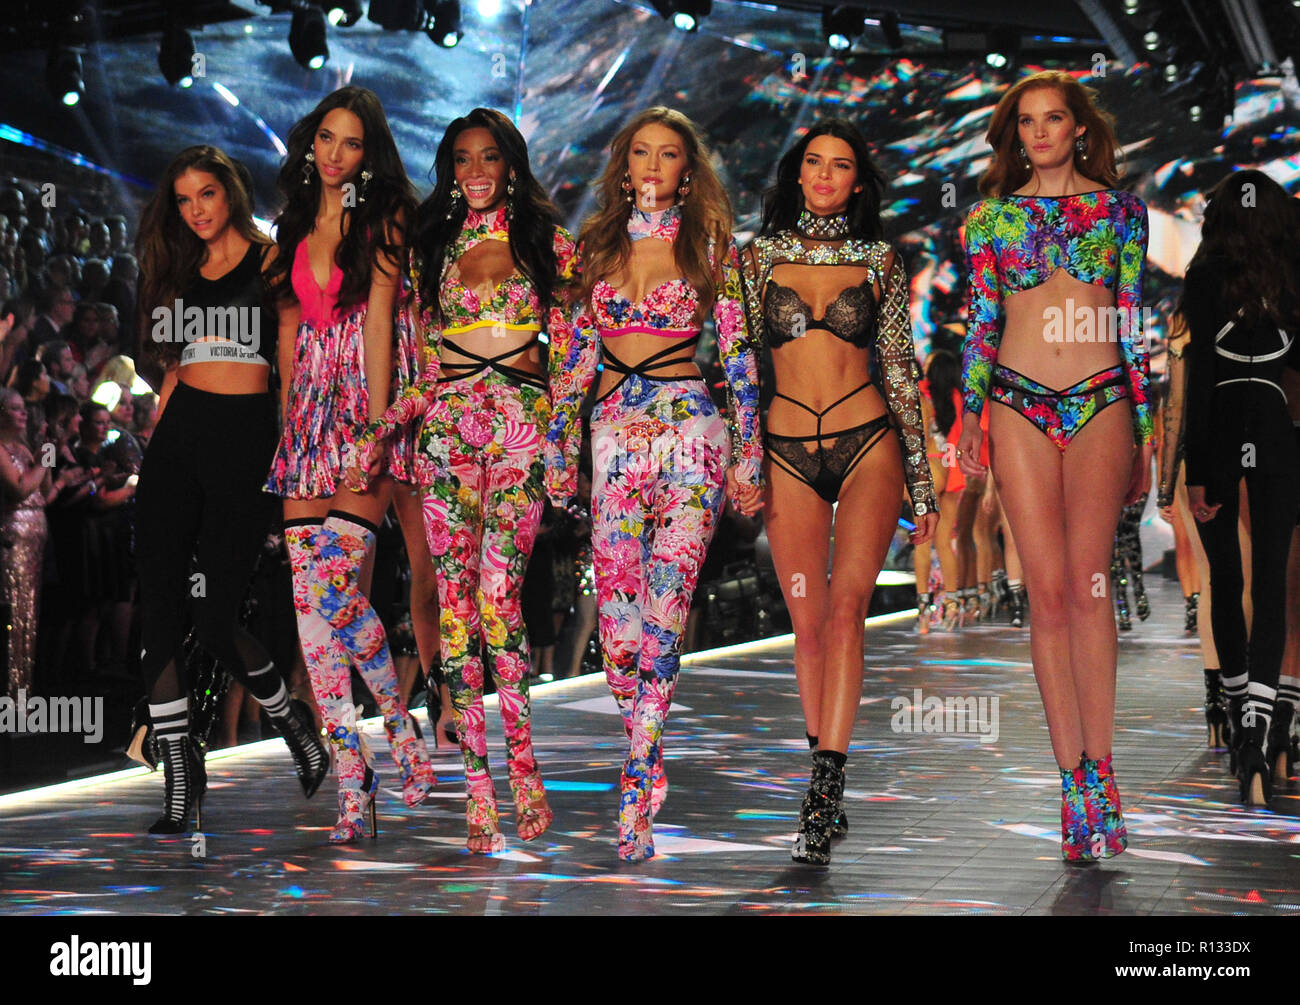 New York, NY, USA. 08th Nov, 2018. Winnie Harlow, Gigi Hadid and Kendall Jenner at the 2018 Victoria's Secret Fashion Show at Pier 94 on November 8, 2018 in New York City. Credit: John Palmer/Media Punch/Alamy Live News - Stock Image